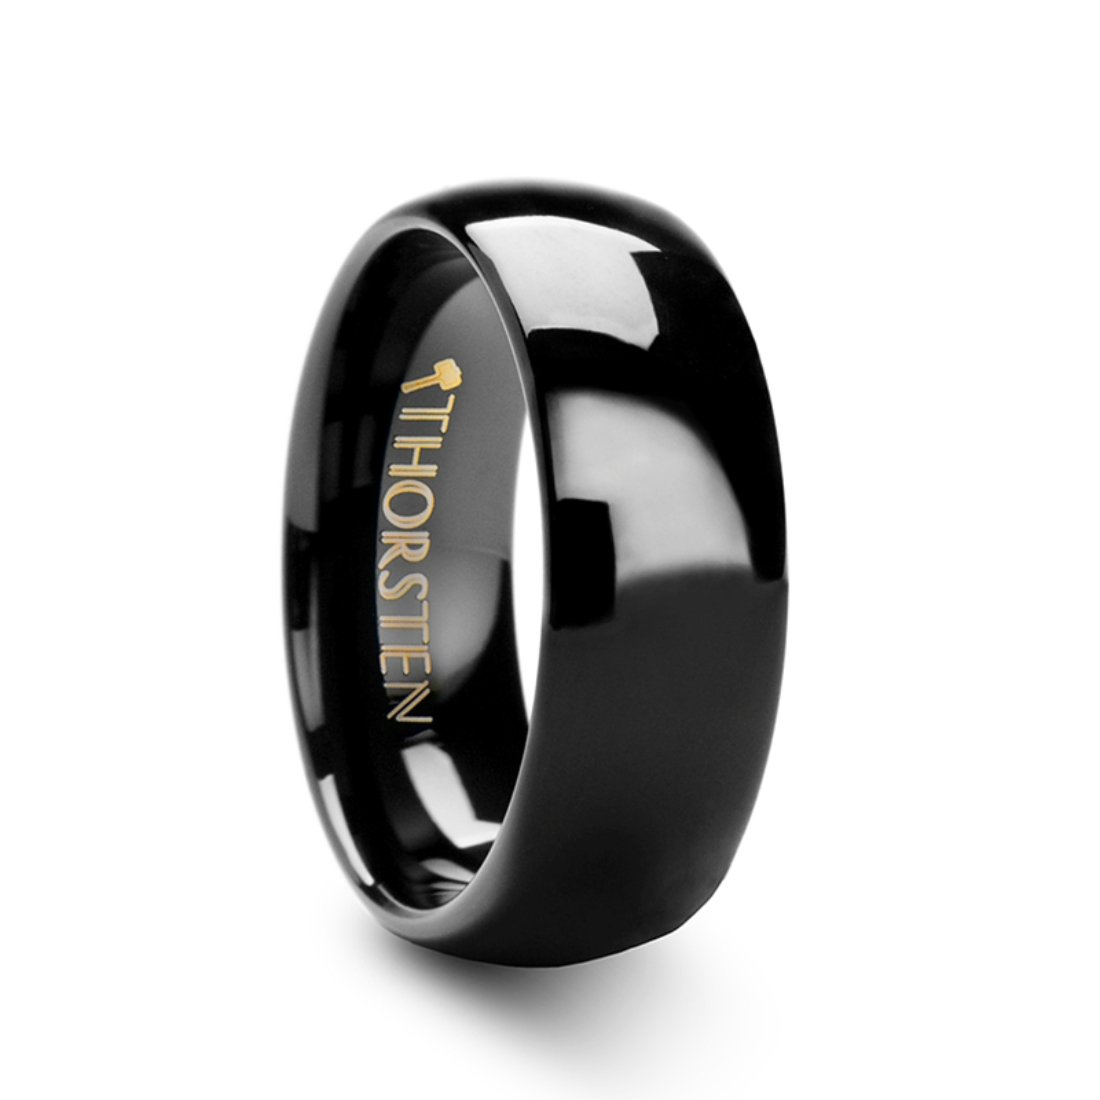 Thorsten Raven Rounded Domed Polished Black Tungsten Ring 8mm Wide Wedding Band from Roy Rose Jewelry